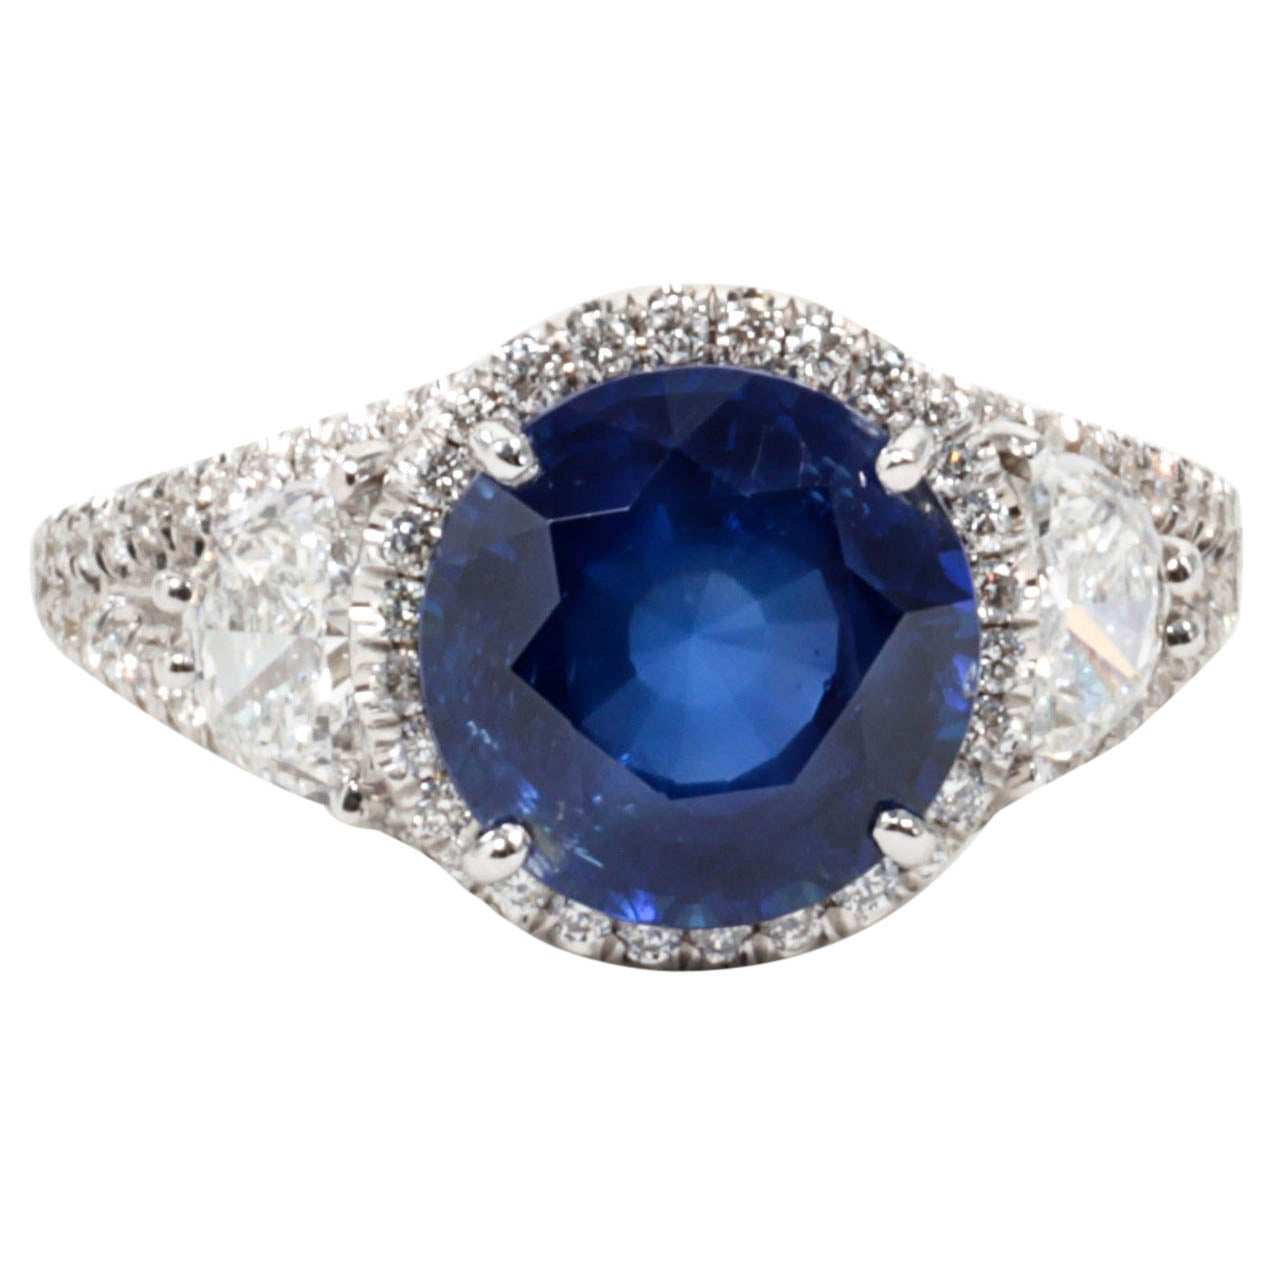 lotfinder g a lot details hgk diamond sapphire rare gubelin by ri jewelry belin ring and